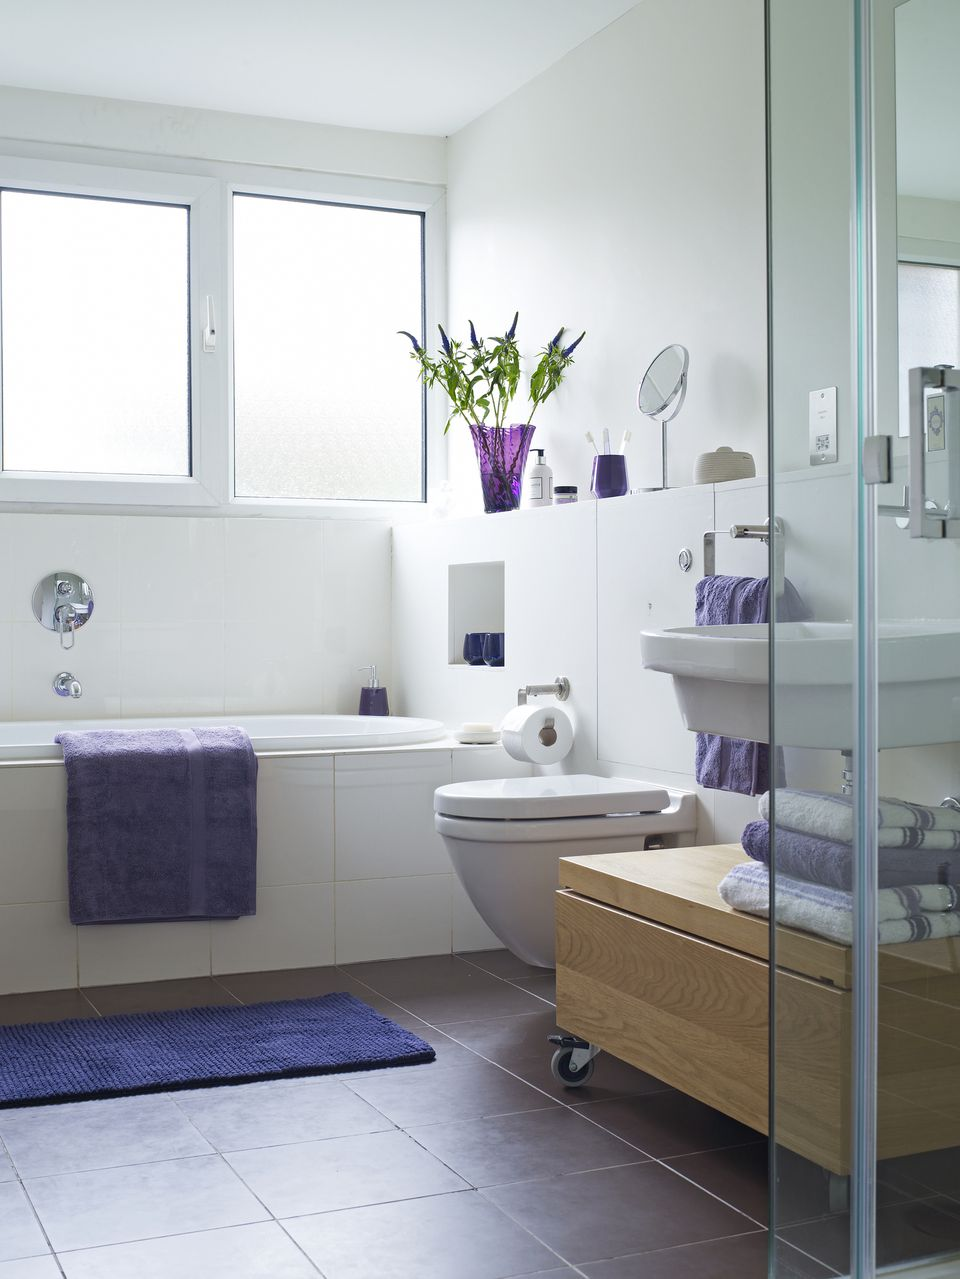 Killer Small Bathroom Design Tips - Small bathroom designs with tub for small bathroom ideas